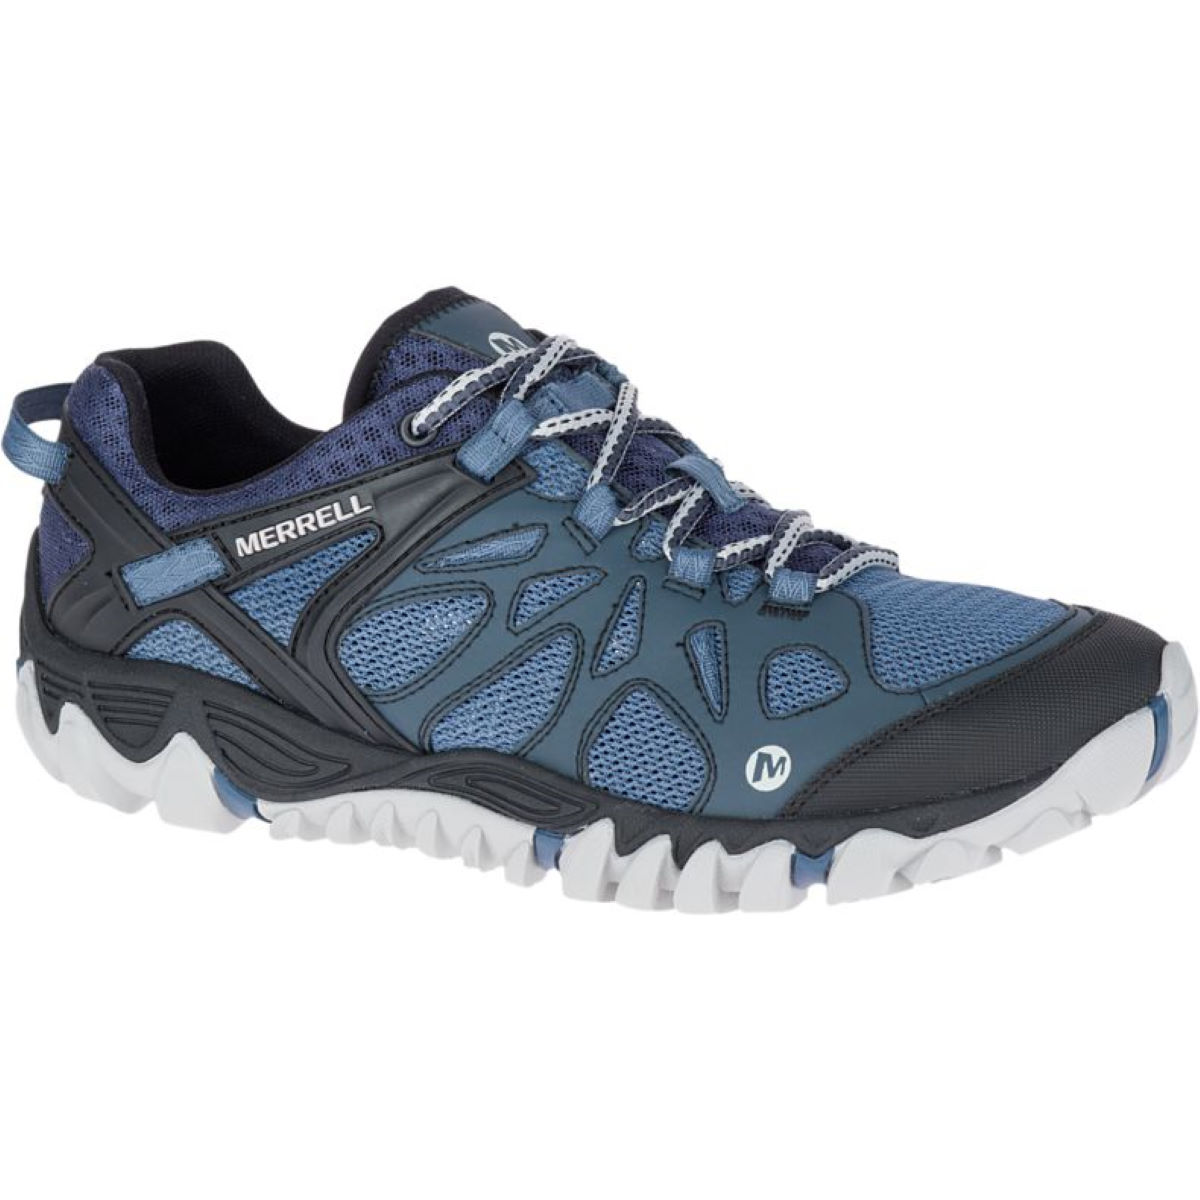 Merrell All Out Blaze Aero Sport Shoes   Shoes